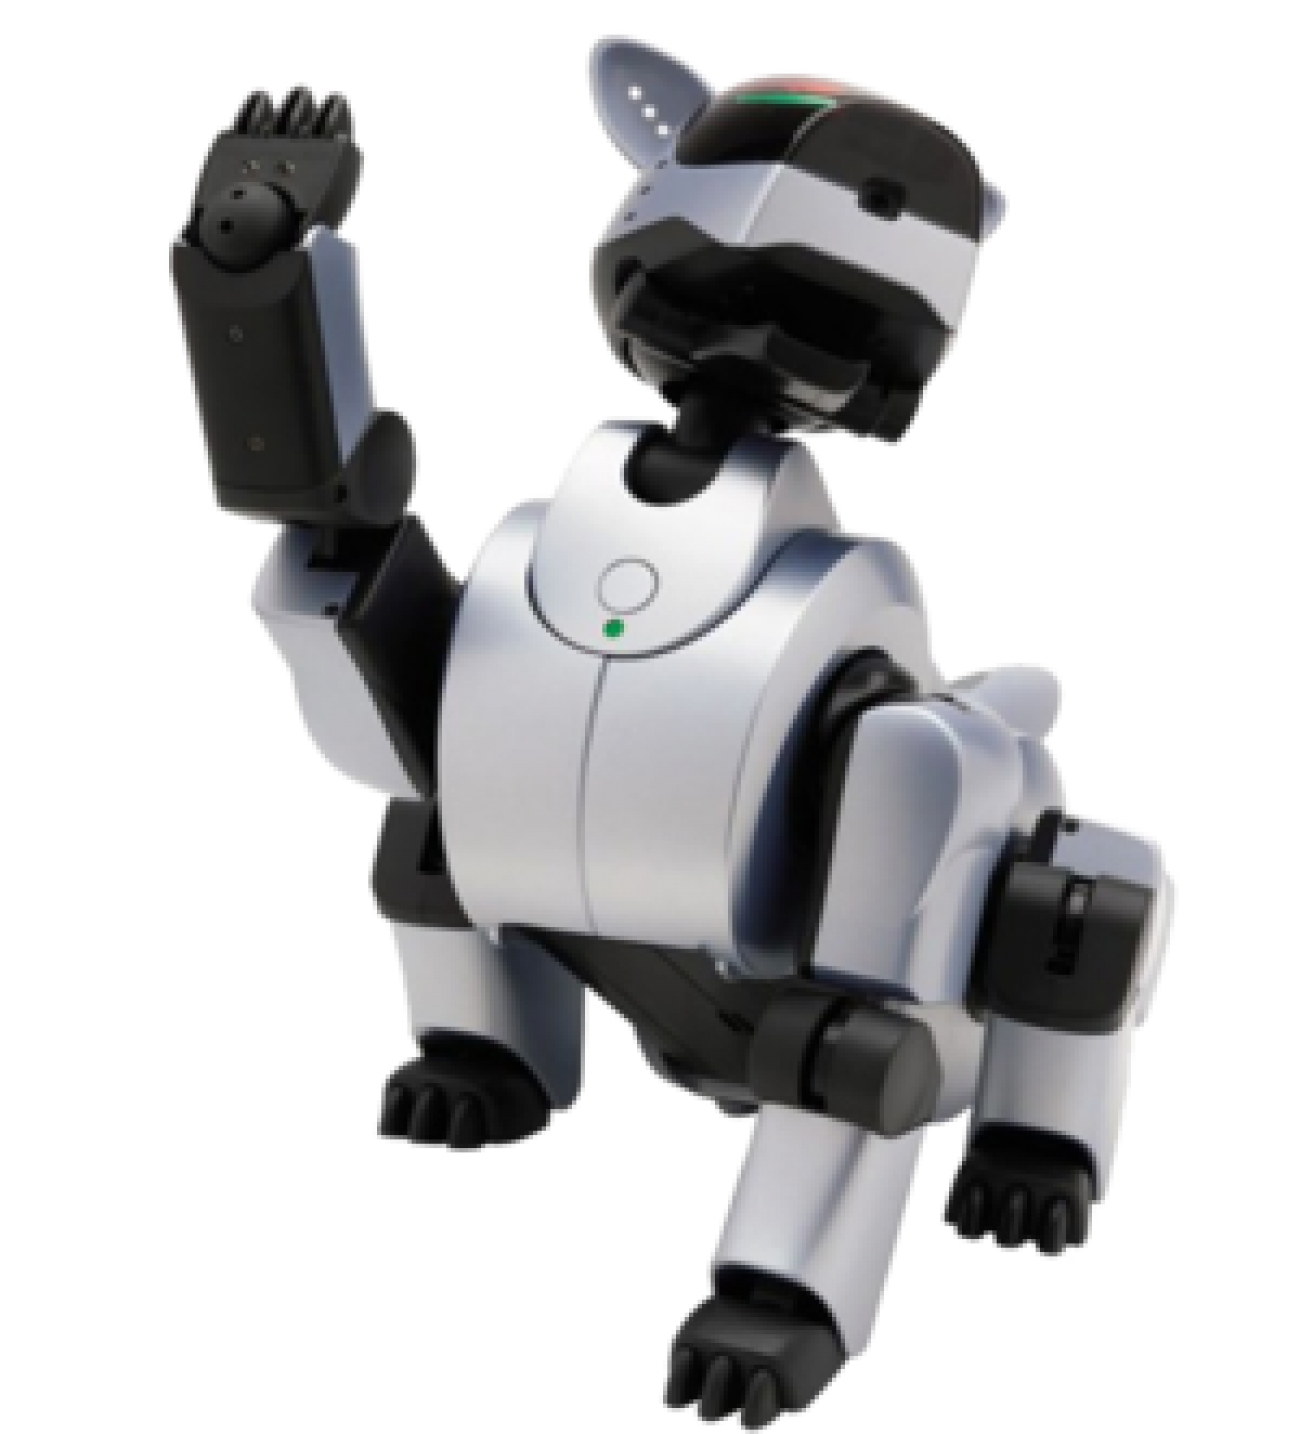 The Sony Aibo ERS-210